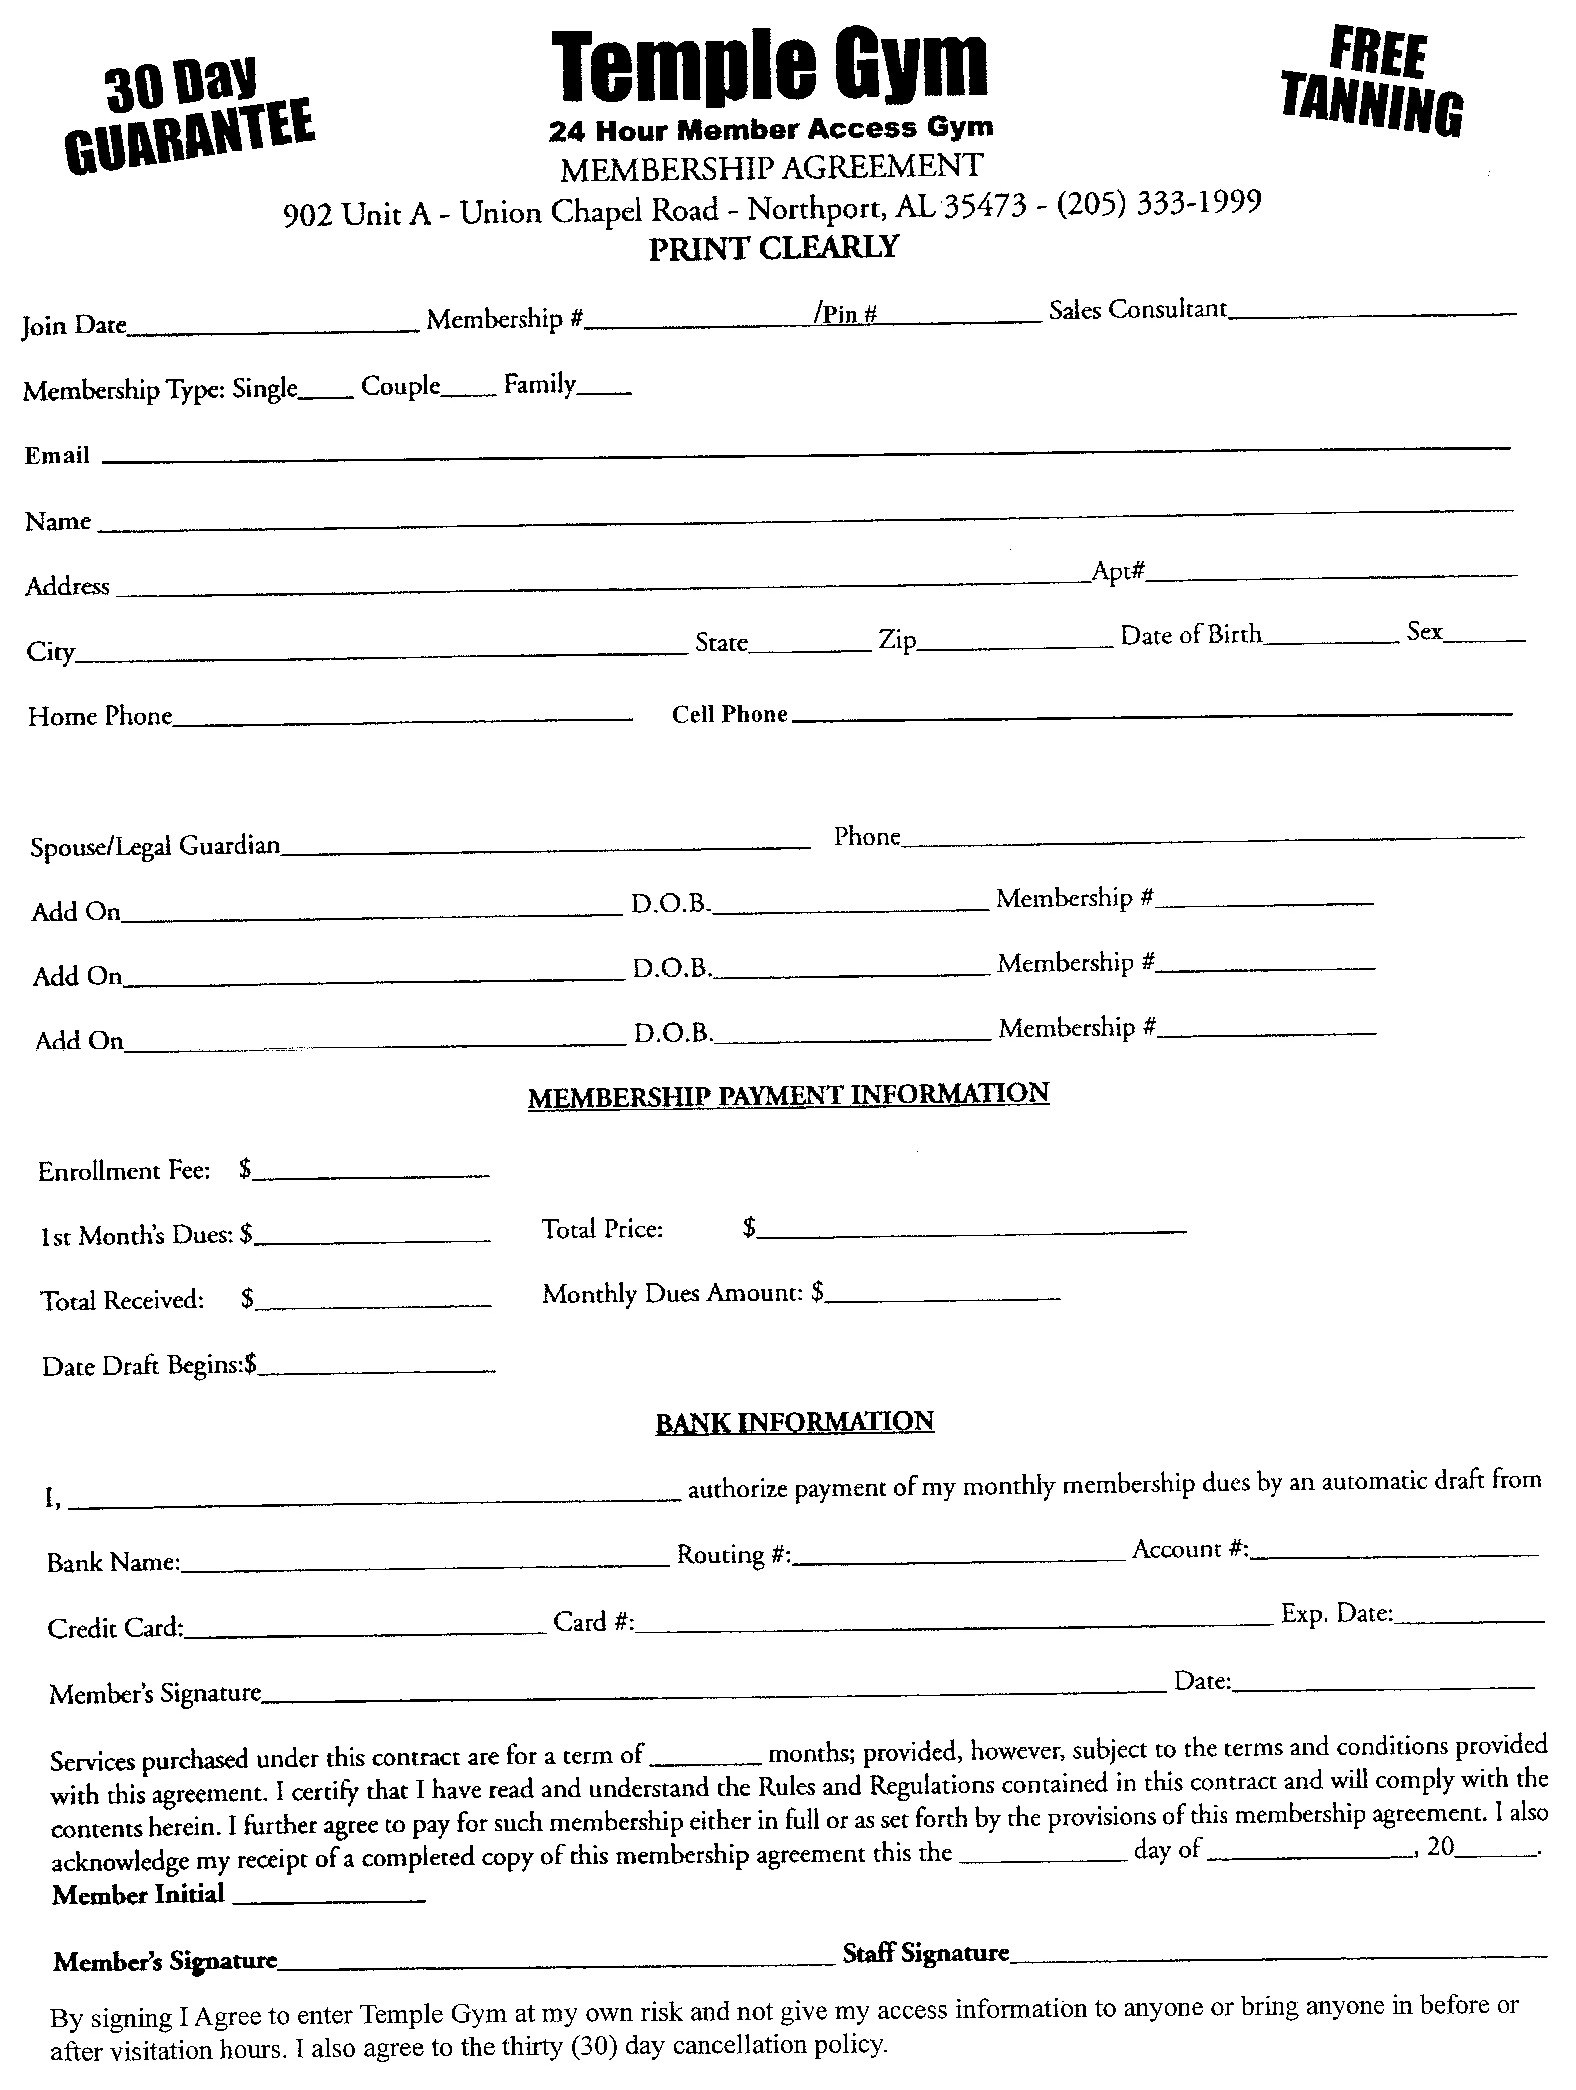 Fitness Center Waiver Release Form